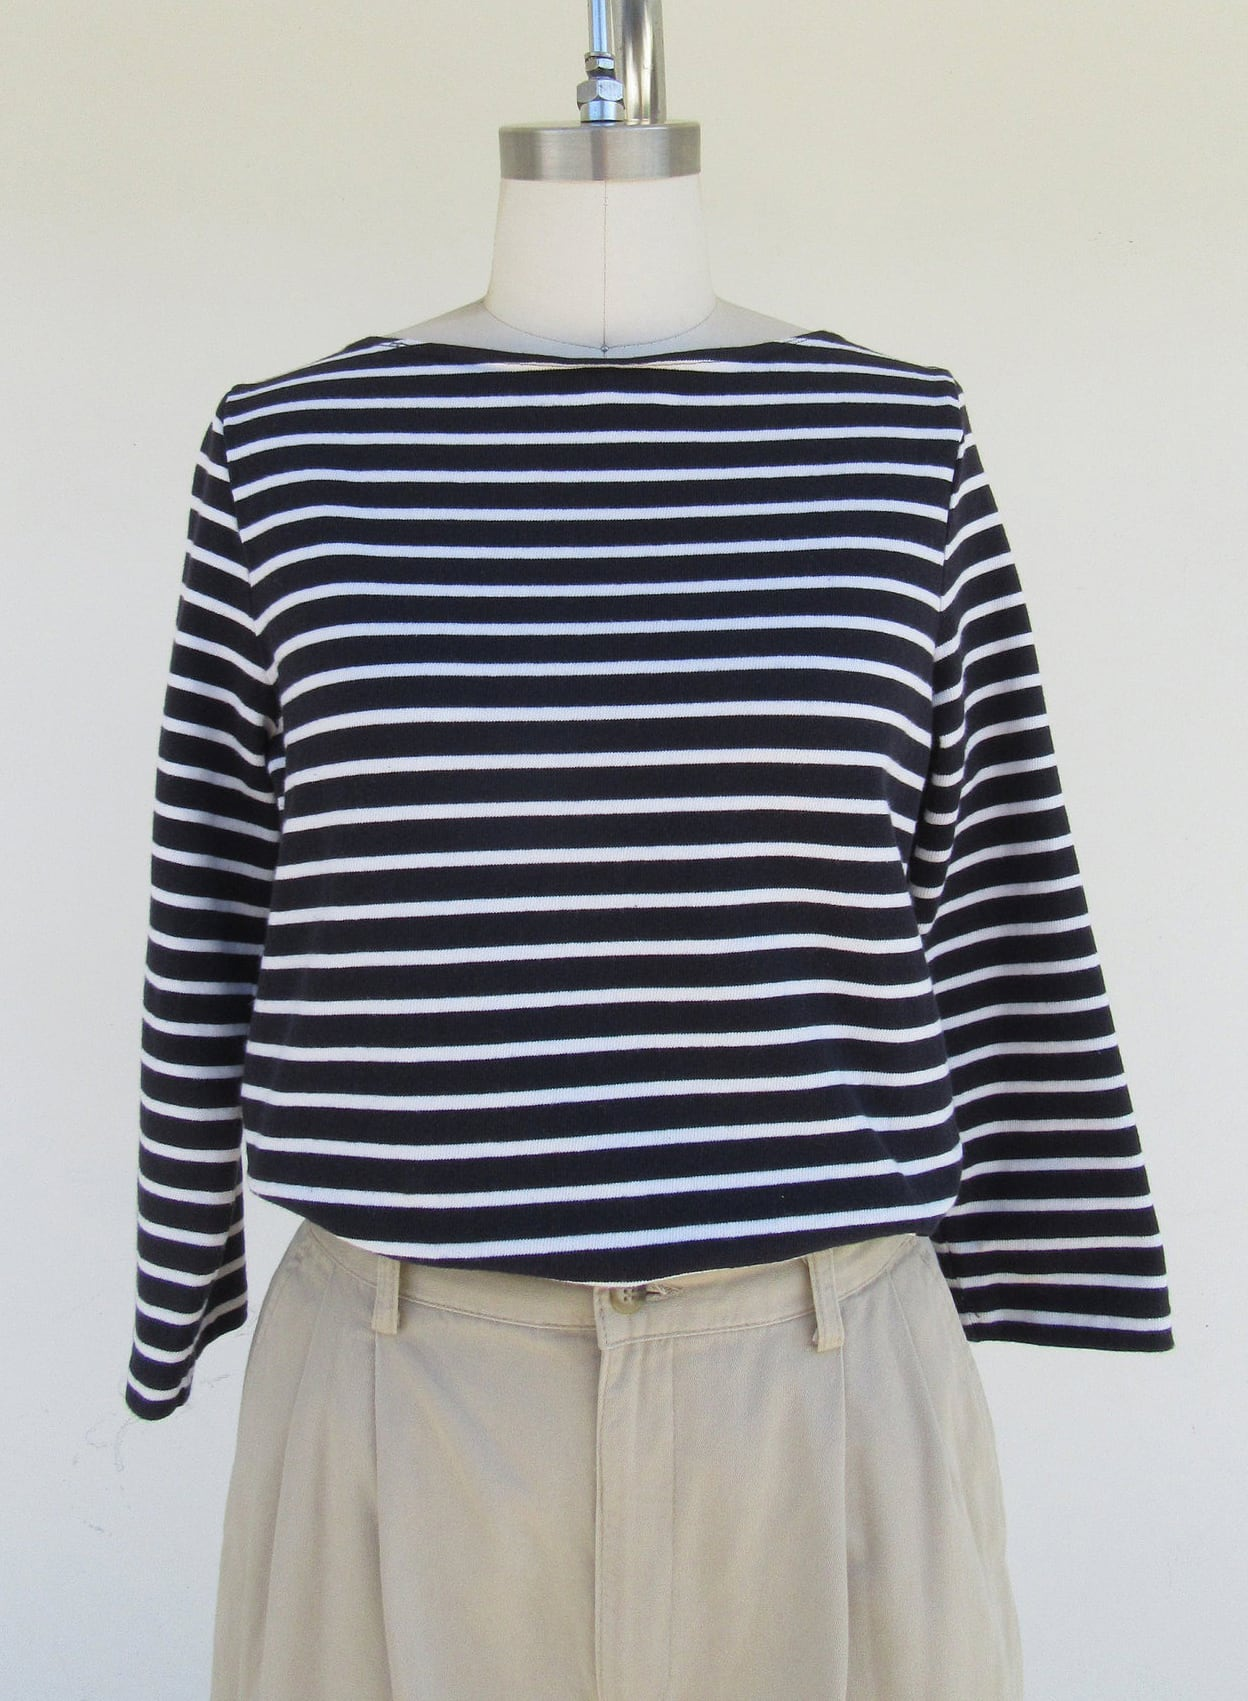 80s 90s All Cotton Boat Neck Striped Navy Blue and White Long Sleeve Top Blouse Shirt | Nautical flair All Cotton High Crew Neck Top | S